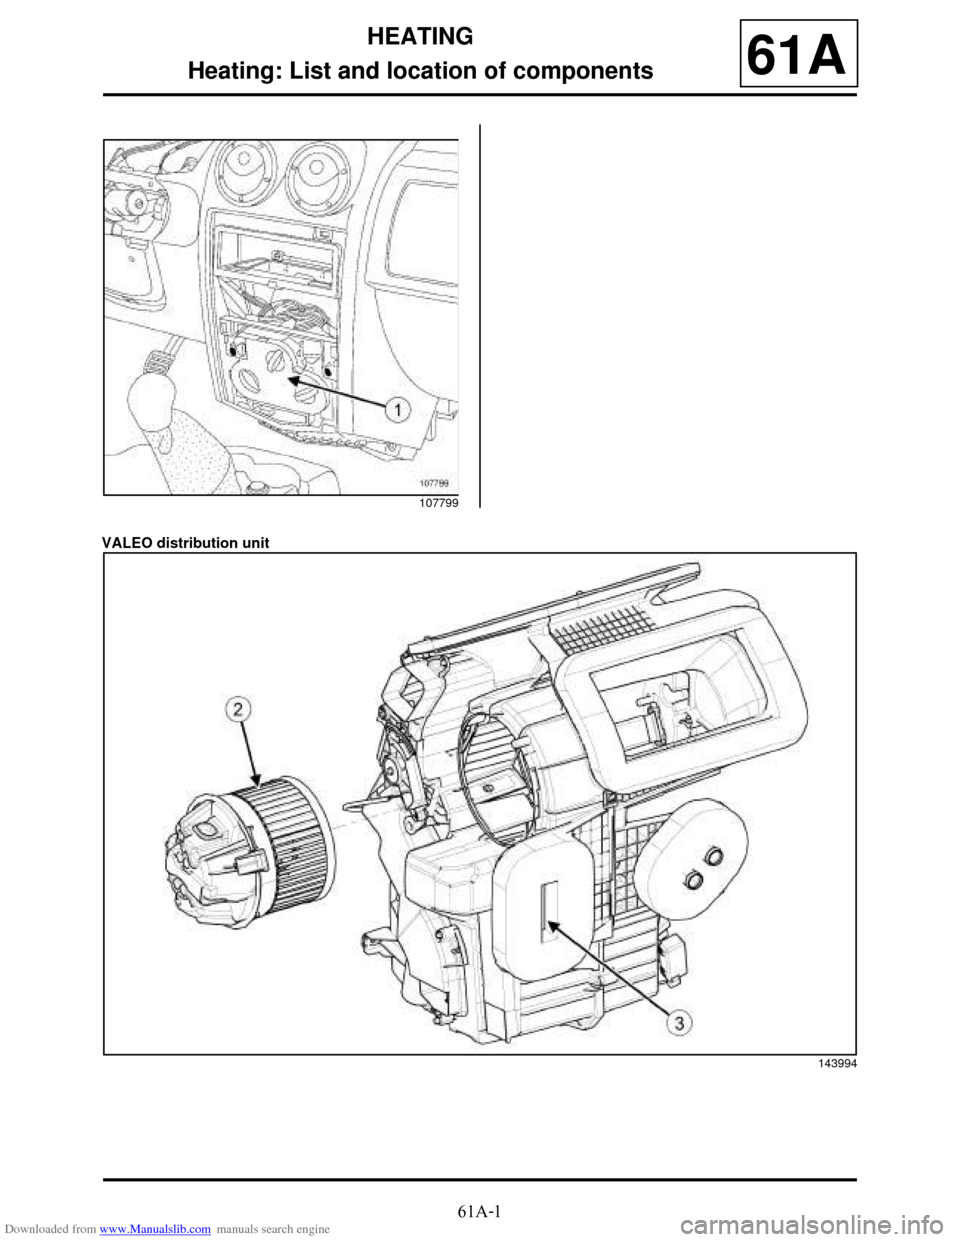 DACIA DUSTER 2009 1.G Heating And Air Conditioning Workshop Manual, Page 3